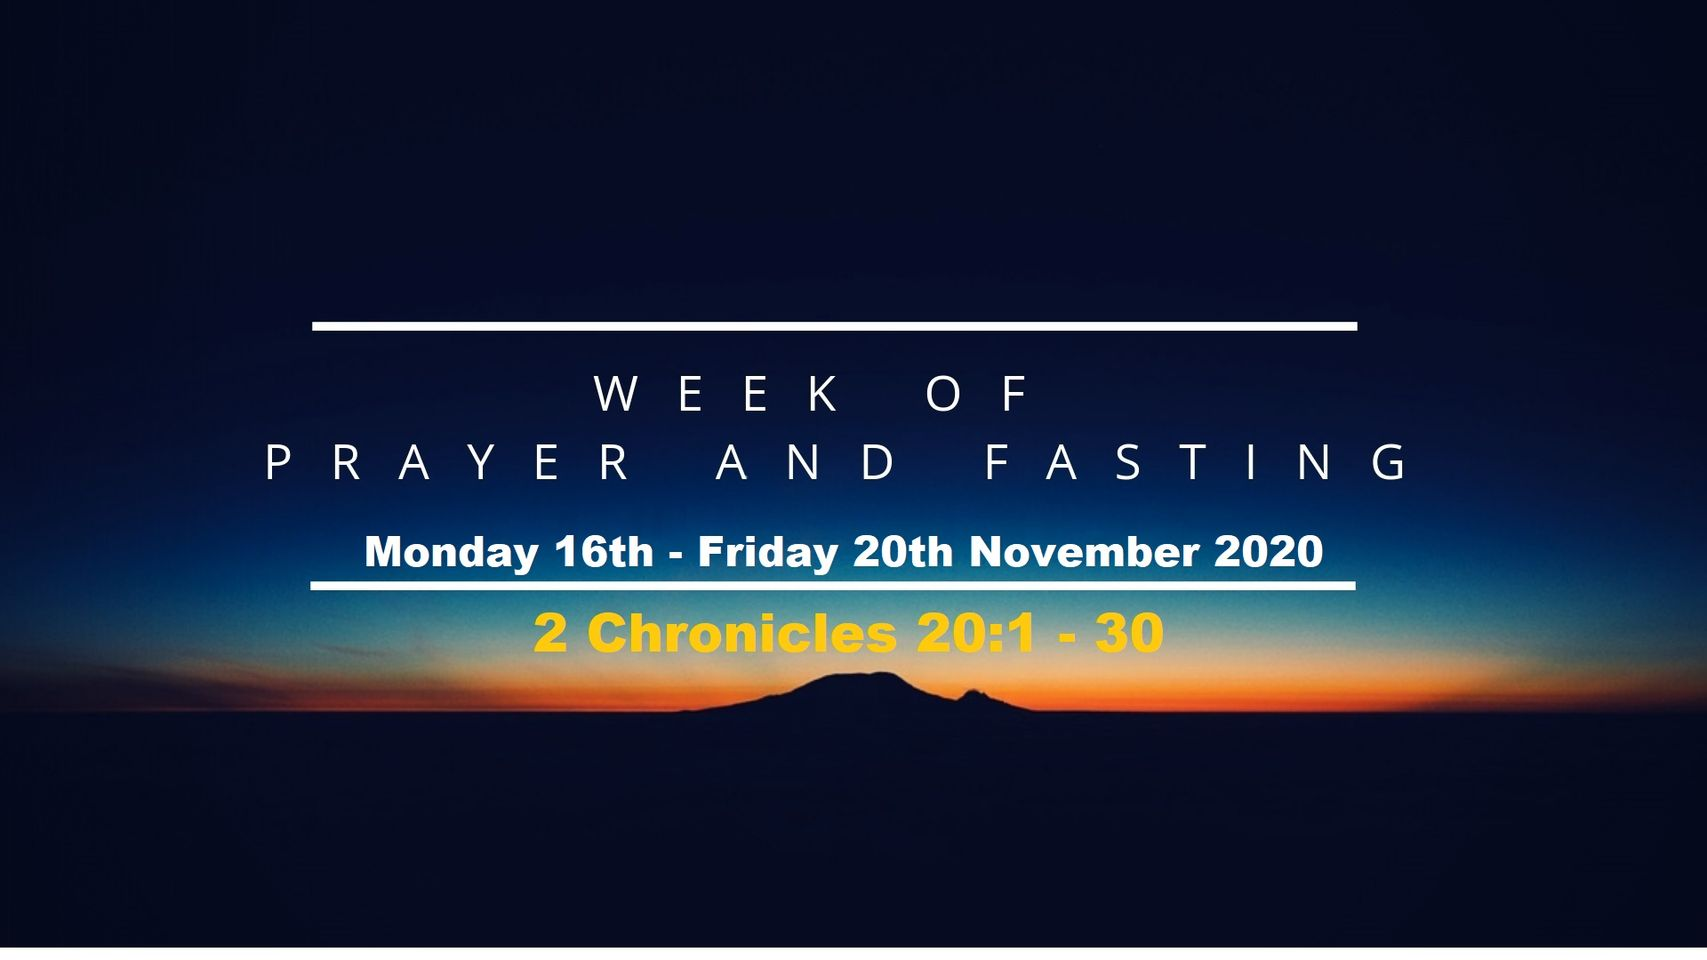 Week of Prayer